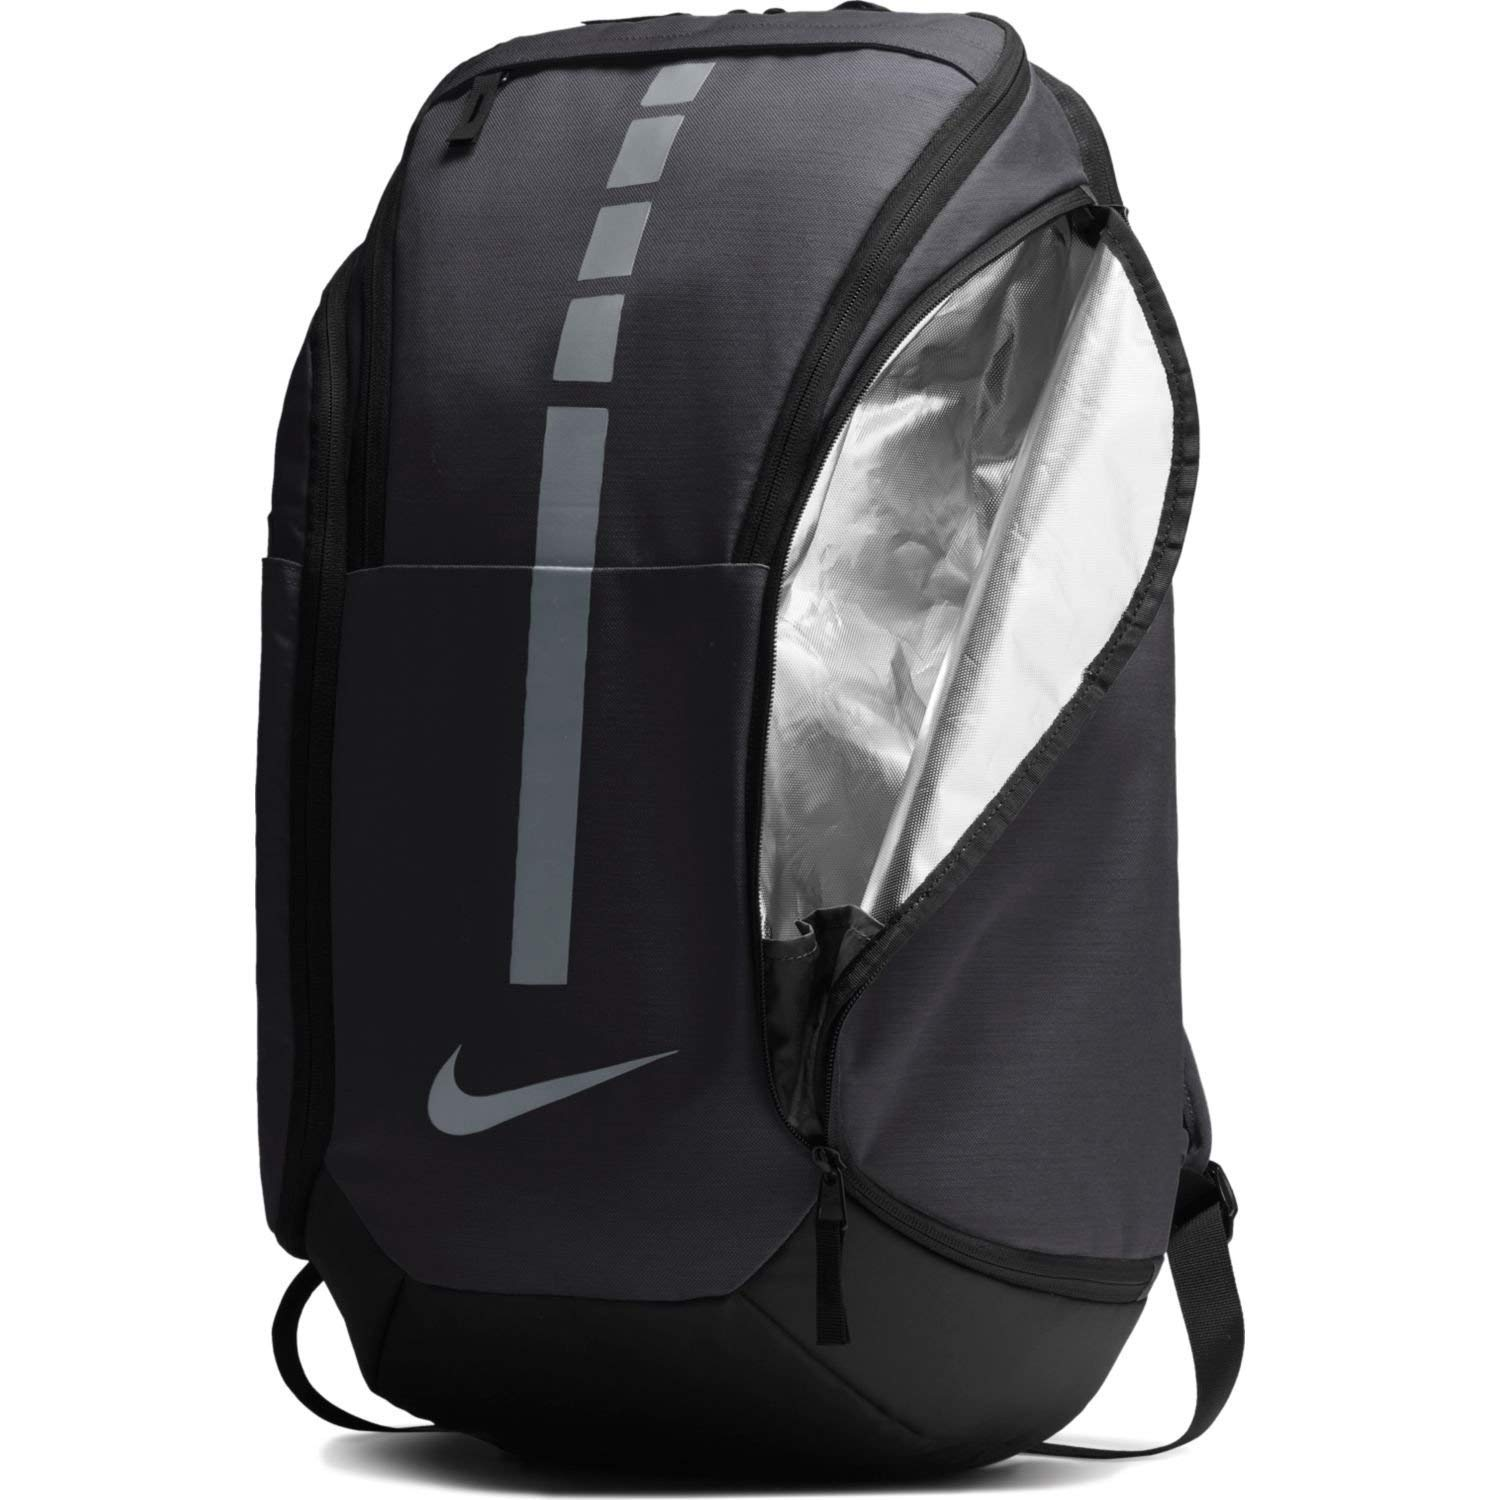 c5c601c50362 Nike Hoops Elite Hoops Pro Basketball Backpack Dark Grey Metallic Cool  Grey  Amazon.co.uk  Sports   Outdoors